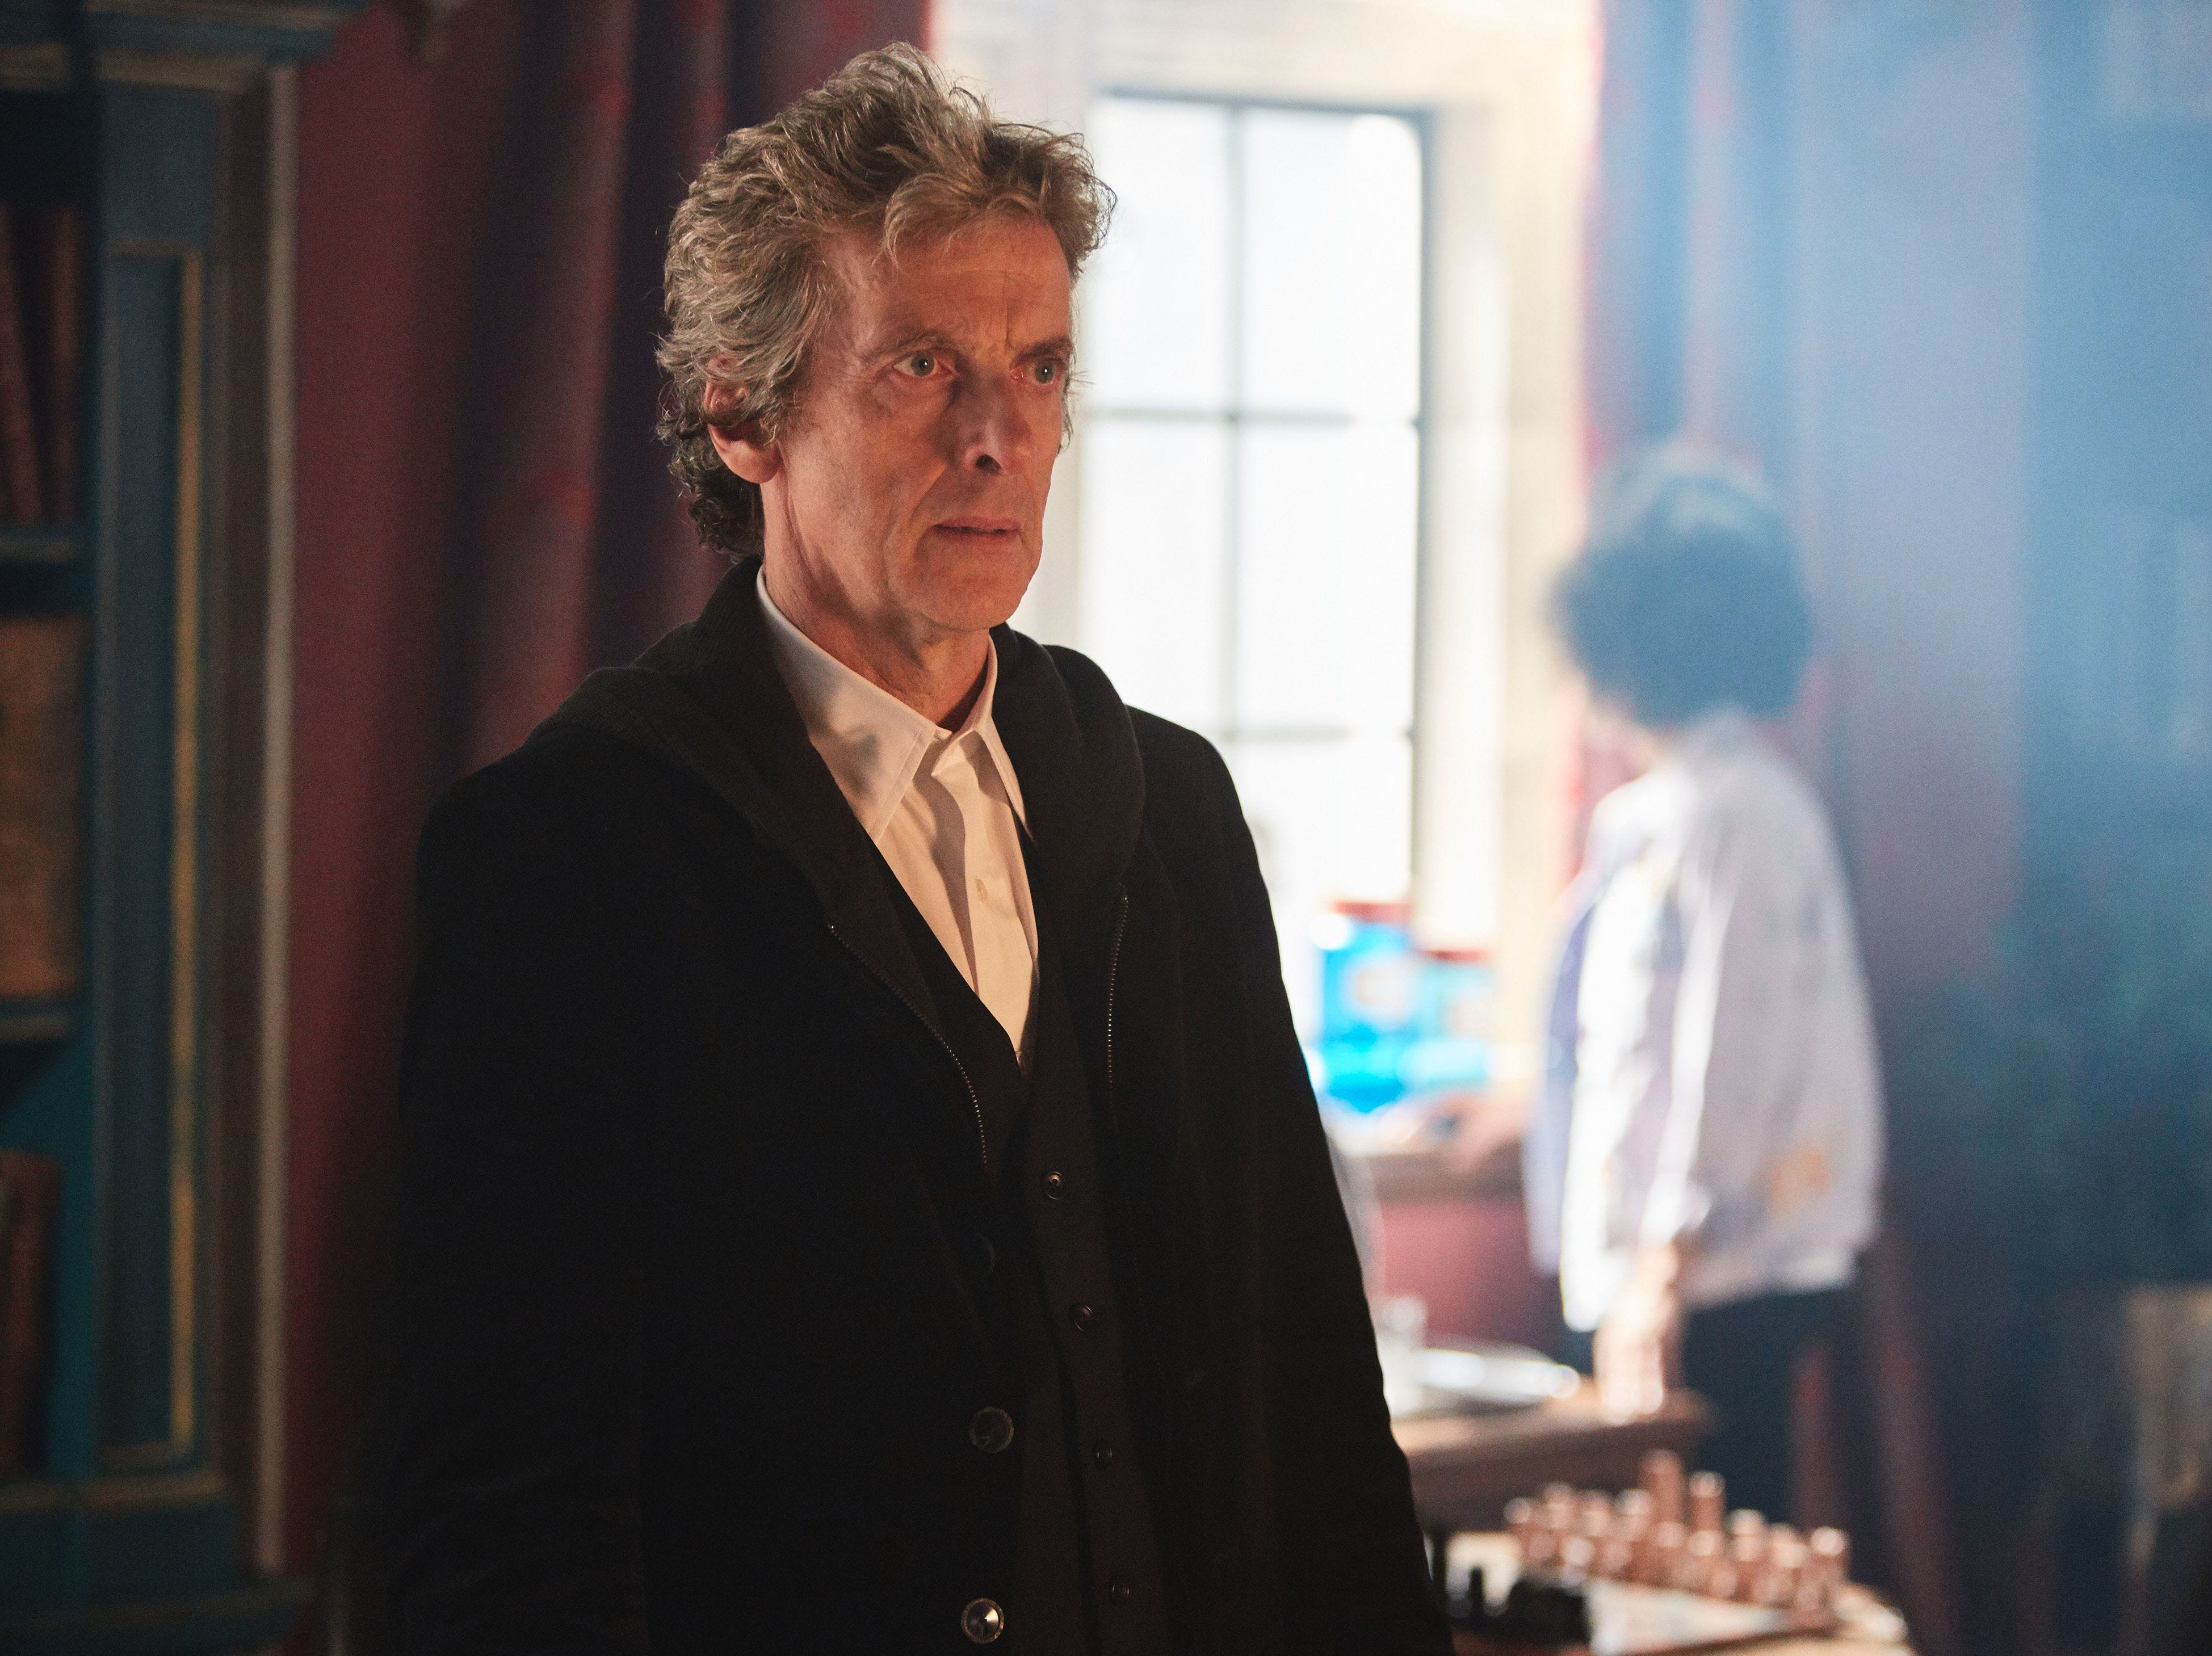 """In 2014, Peter Capaldi became the Twelfth Doctor, taking over the Tardis for three seasons. He announced his departure in 2017 along with longtime showrunner Steven Moffat. His most recent work including playing the voice of Rabbit in this year's """"Christopher Robin."""""""